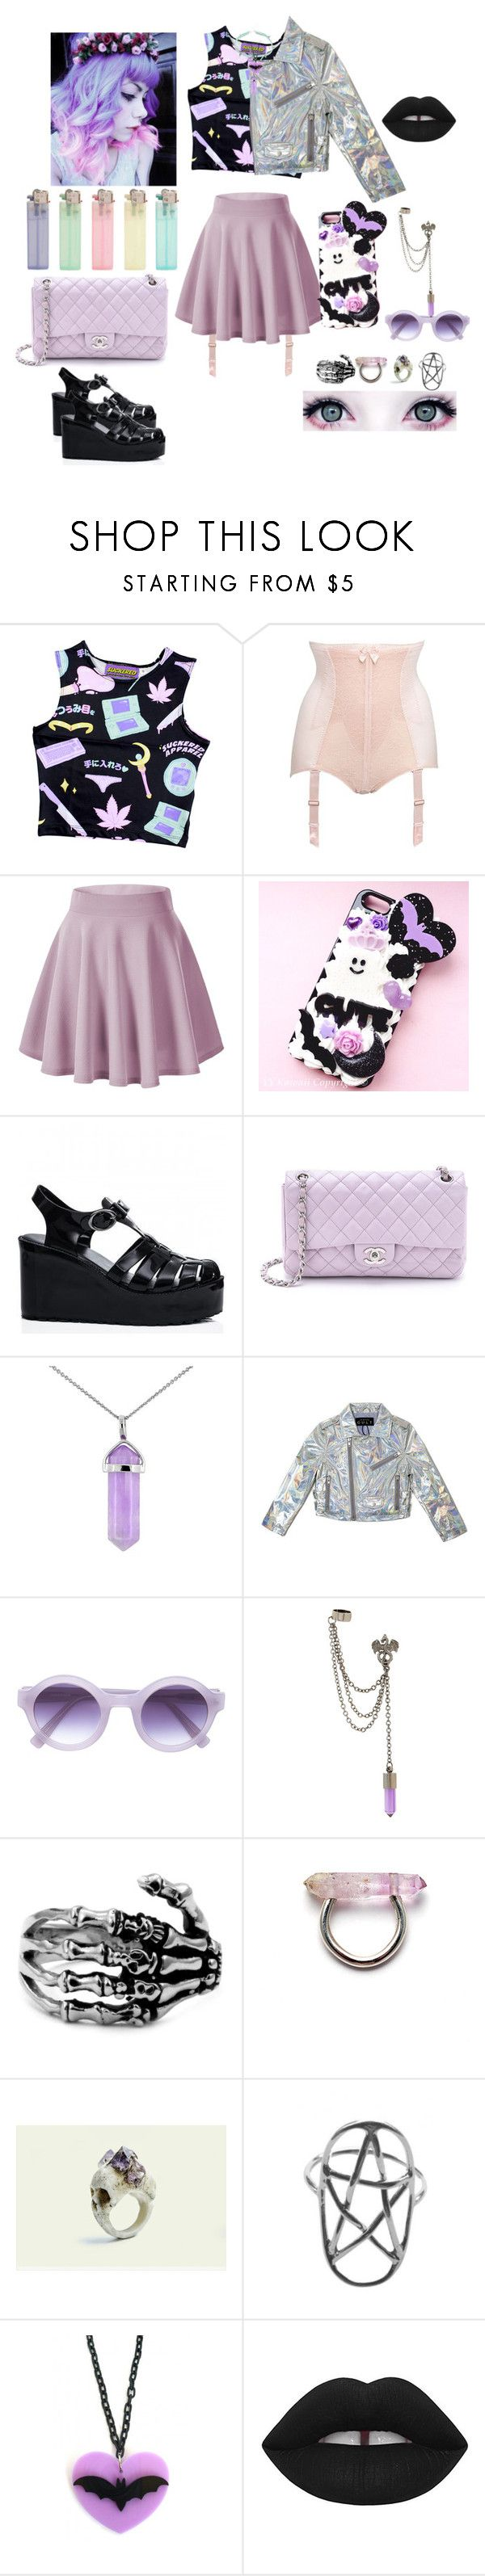 """""""Evevated~ State Champs"""" by headbangingunicorn ❤ liked on Polyvore featuring Gossard, Samsung, Chanel, Lord & Taylor, Derek Lam, Macabre Gadgets and Lime Crime"""